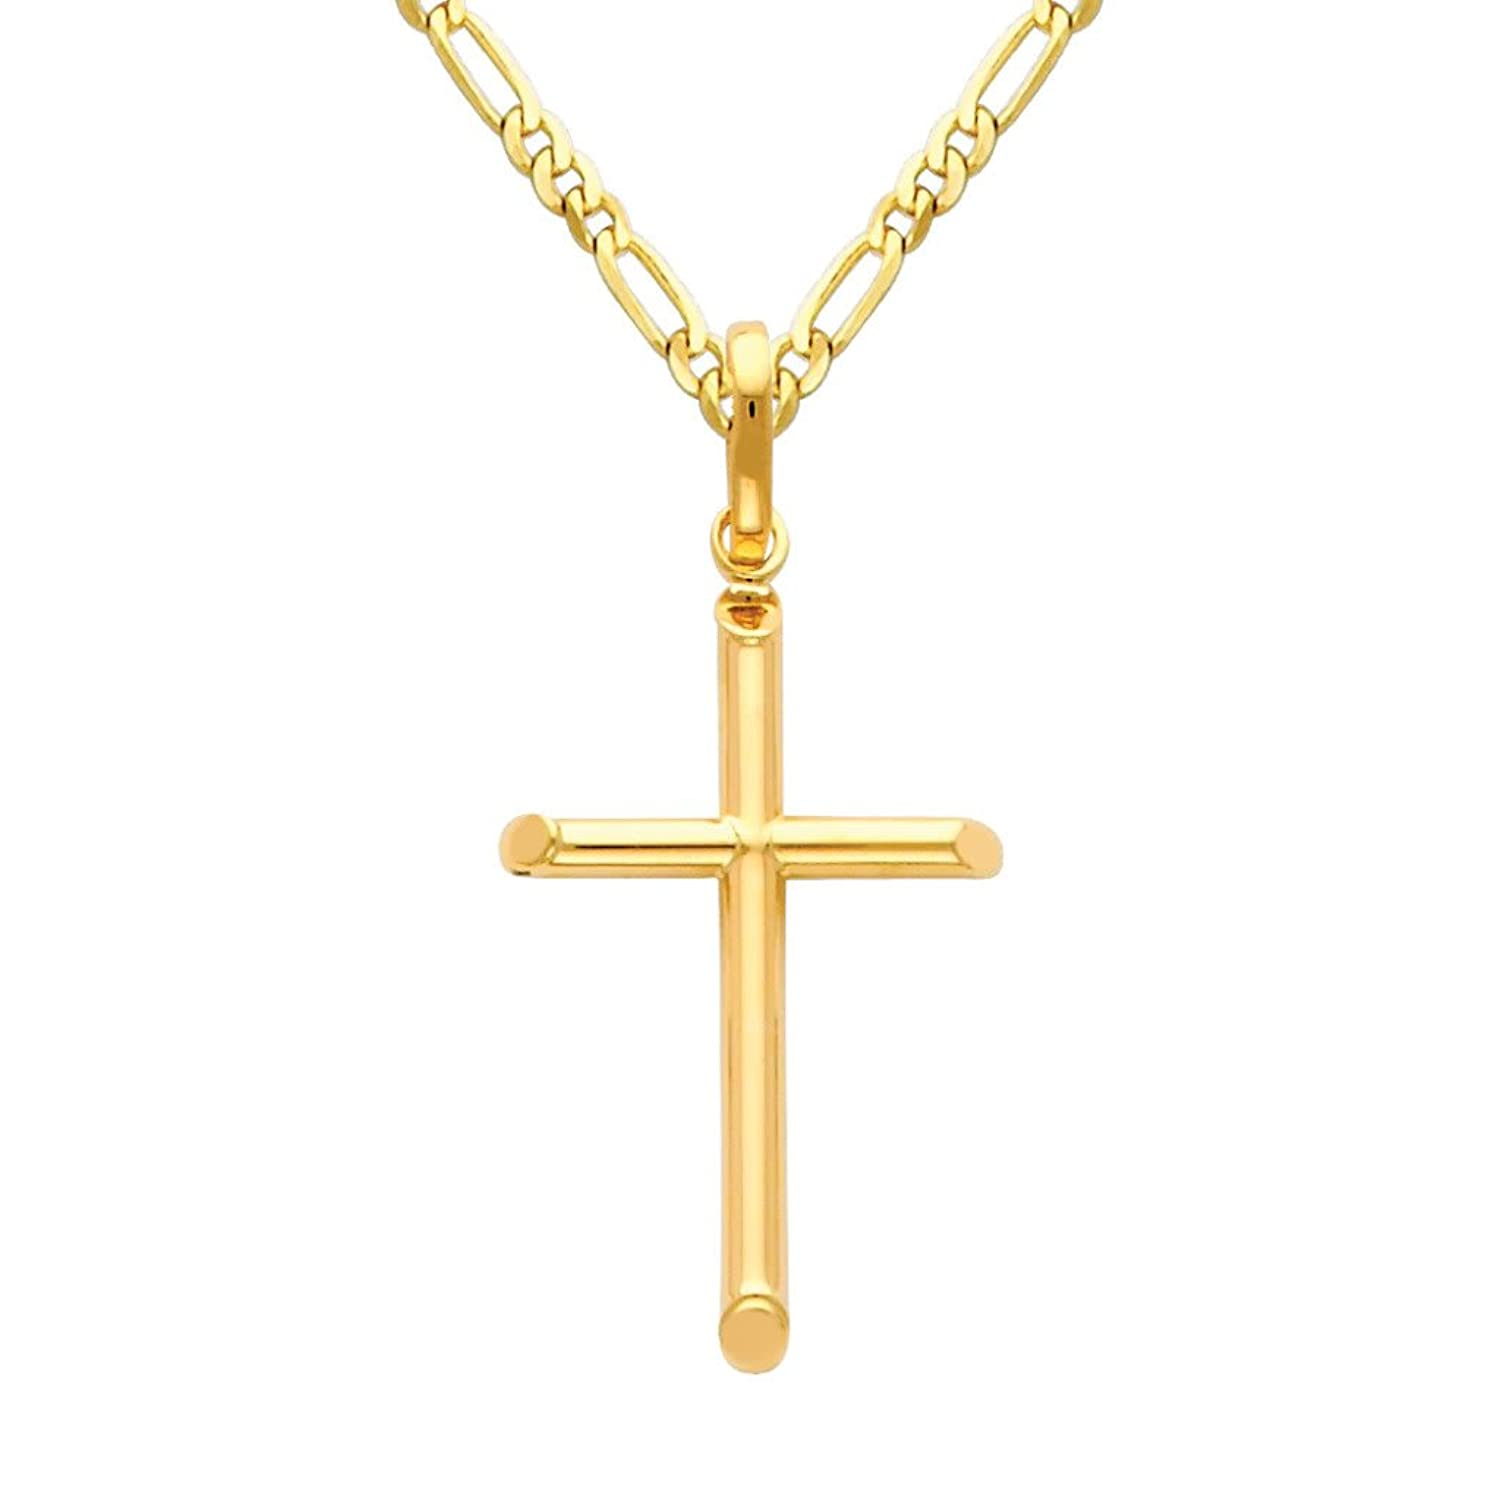 14K Yellow Gold Jewelry Pendants /& Charms Solid Polished Textured Bow Arrow Pendant